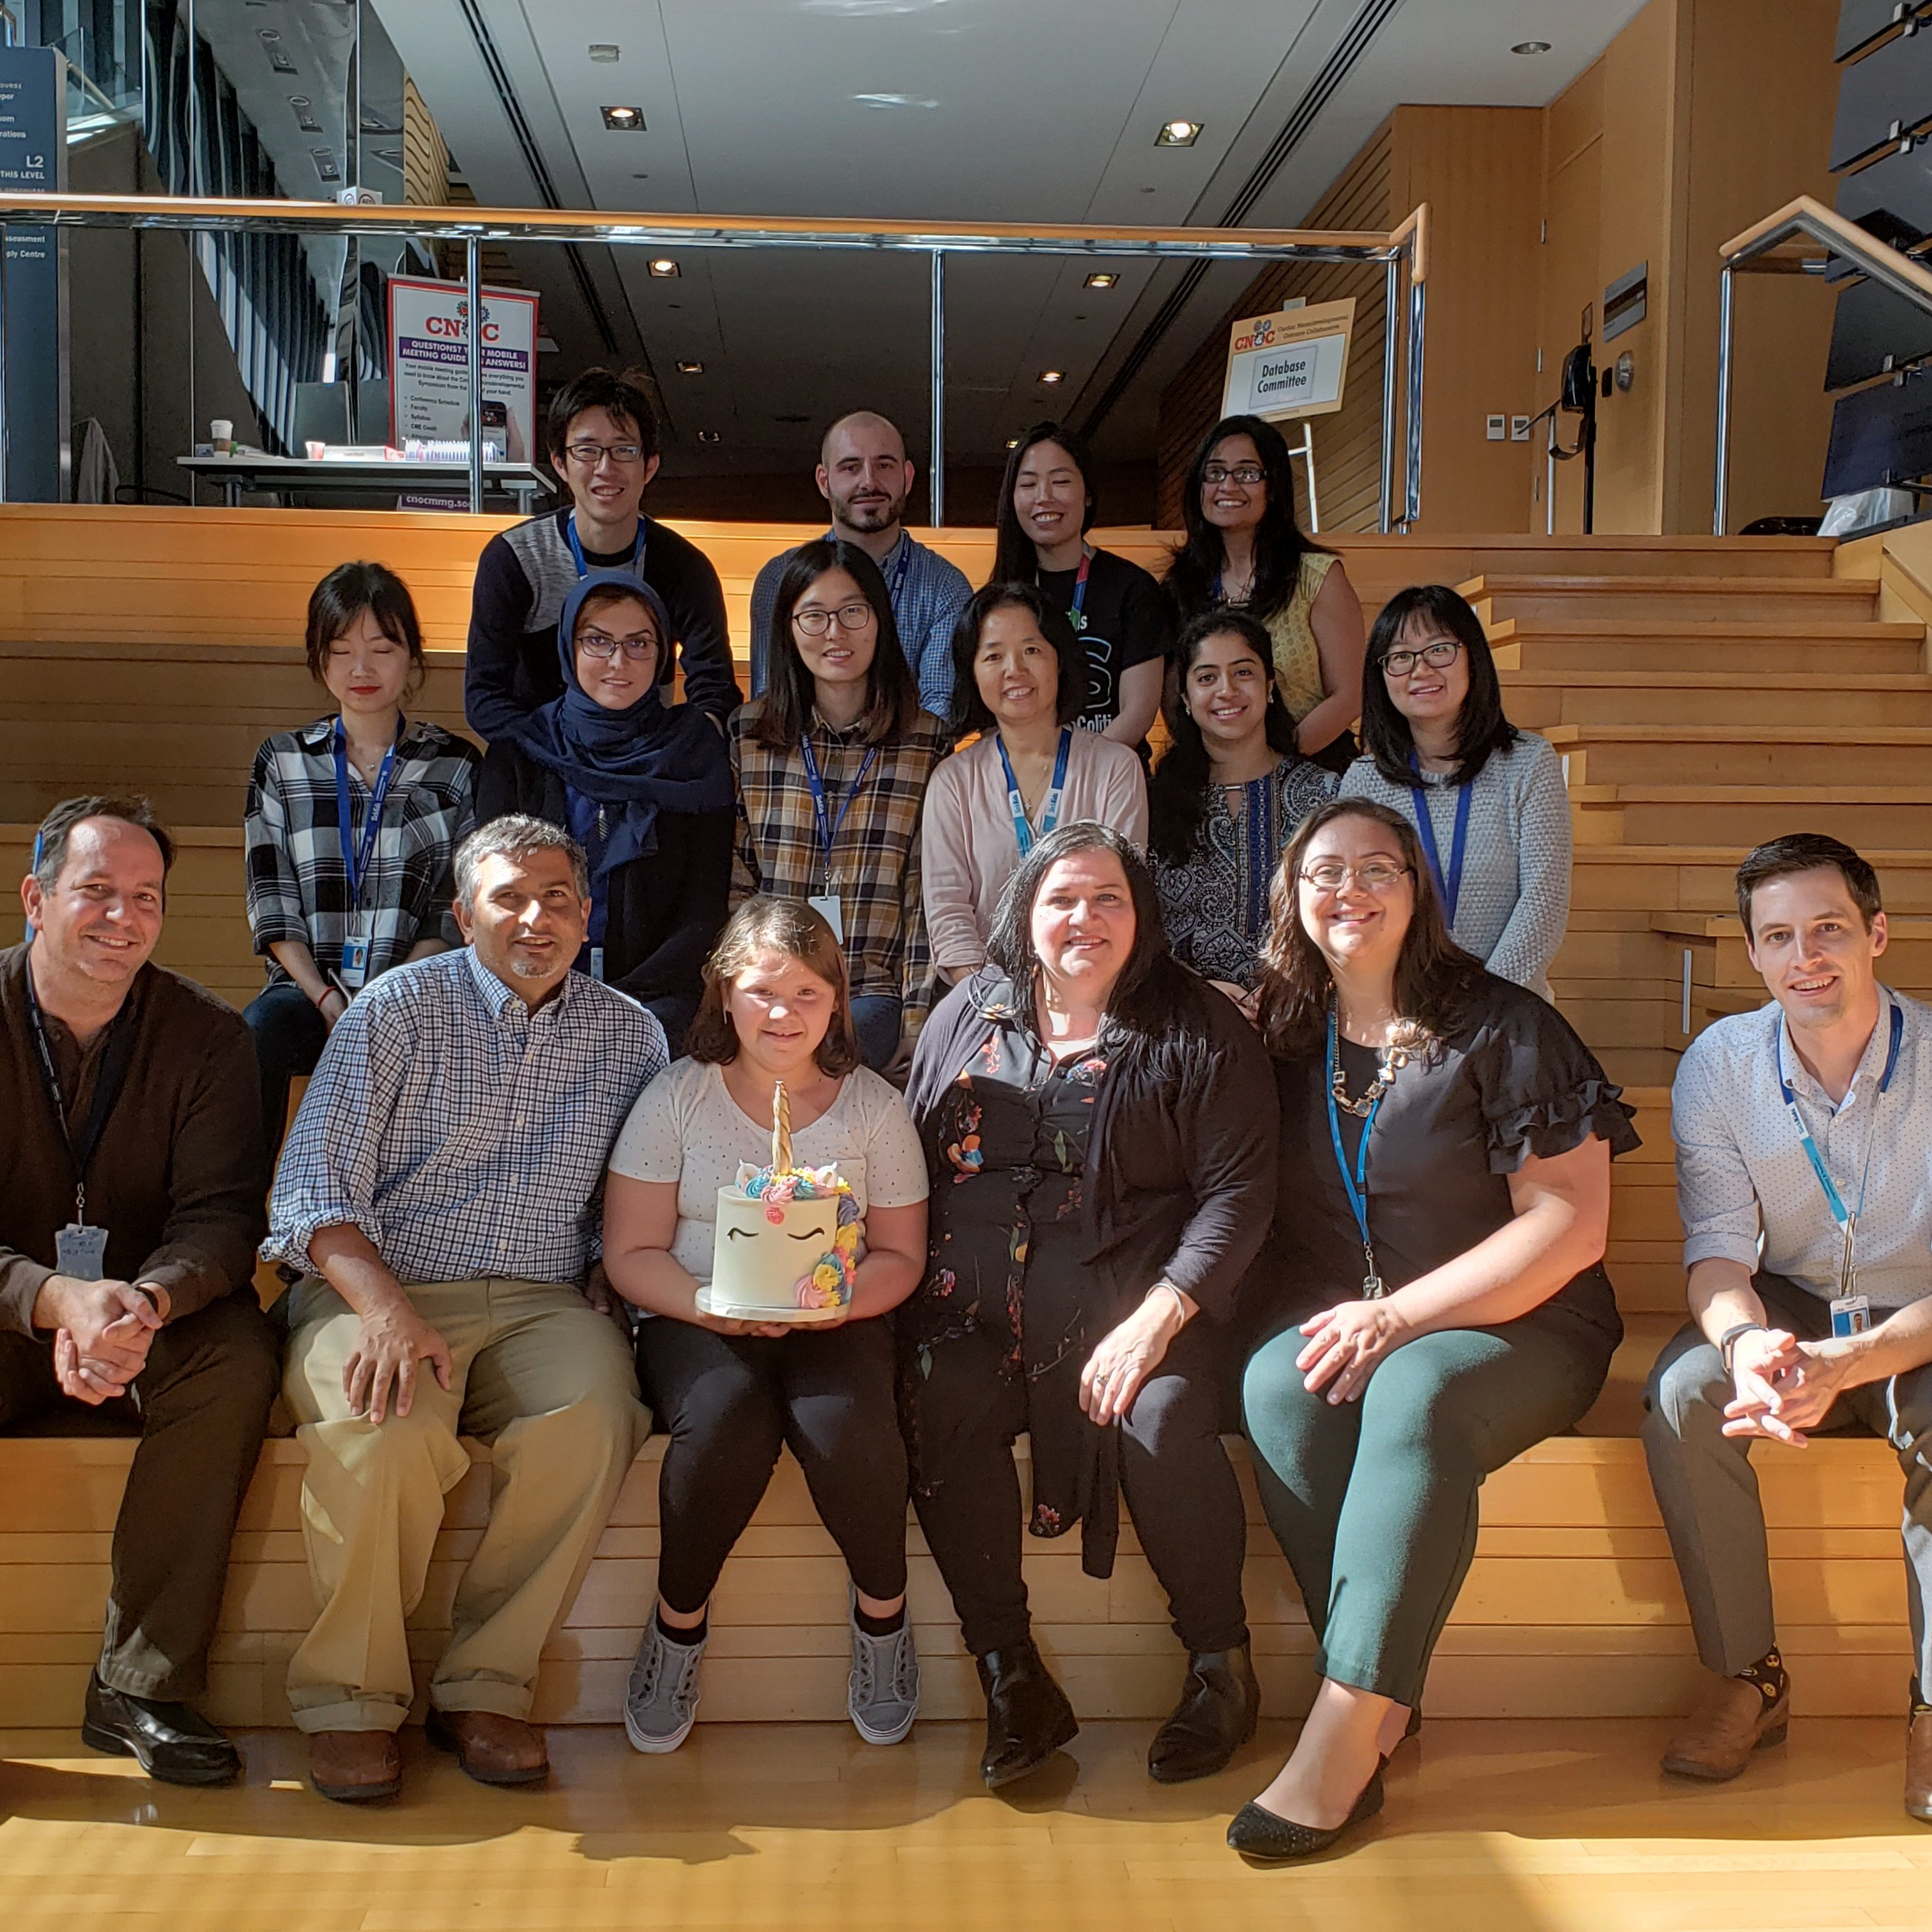 Three weeks ago, Brygette Park visited the NEOPICS team in Toronto. (Courtesy of NEOPICS)